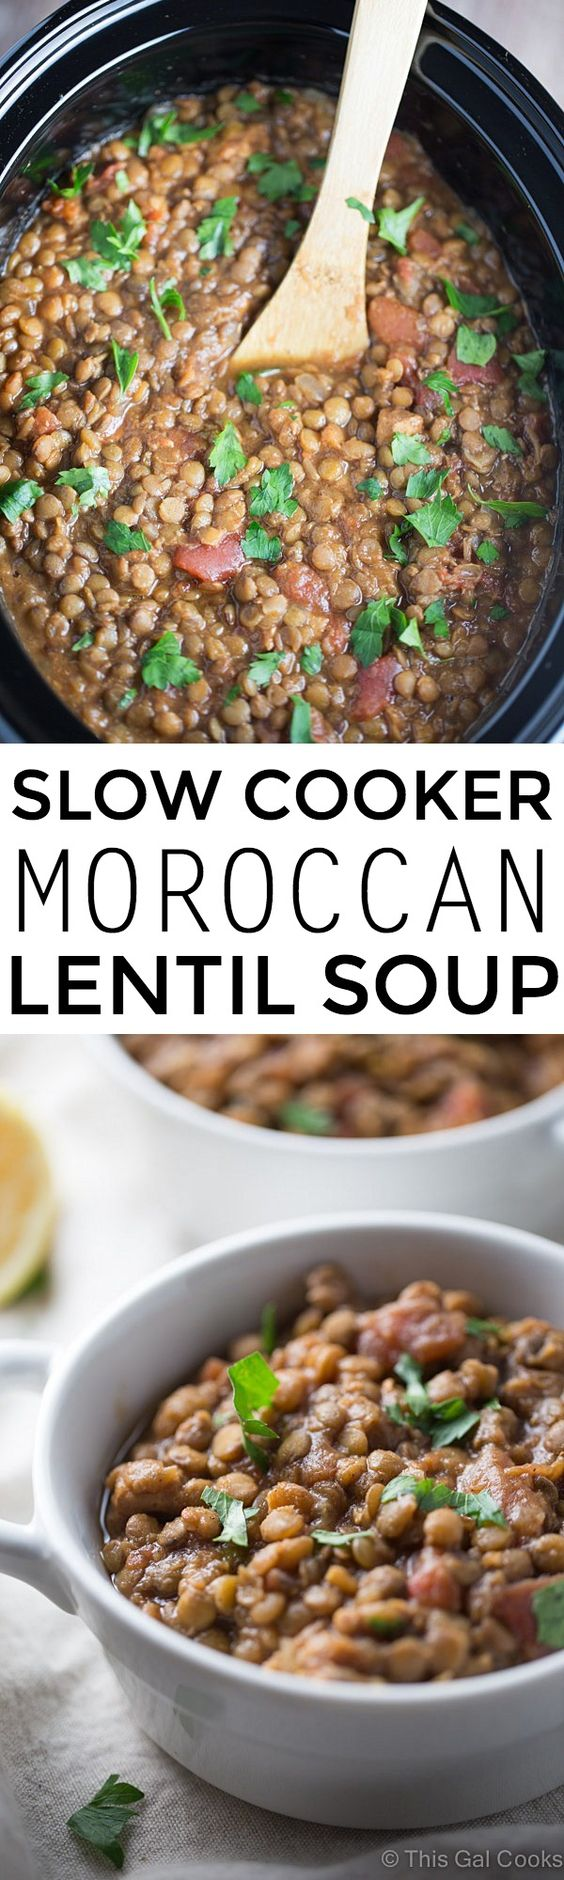 Slow Cooker Moroccan Lentil Soup. Under 300 calories per serving! | This Gal Cooks #dinner --------> http://tipsalud.com